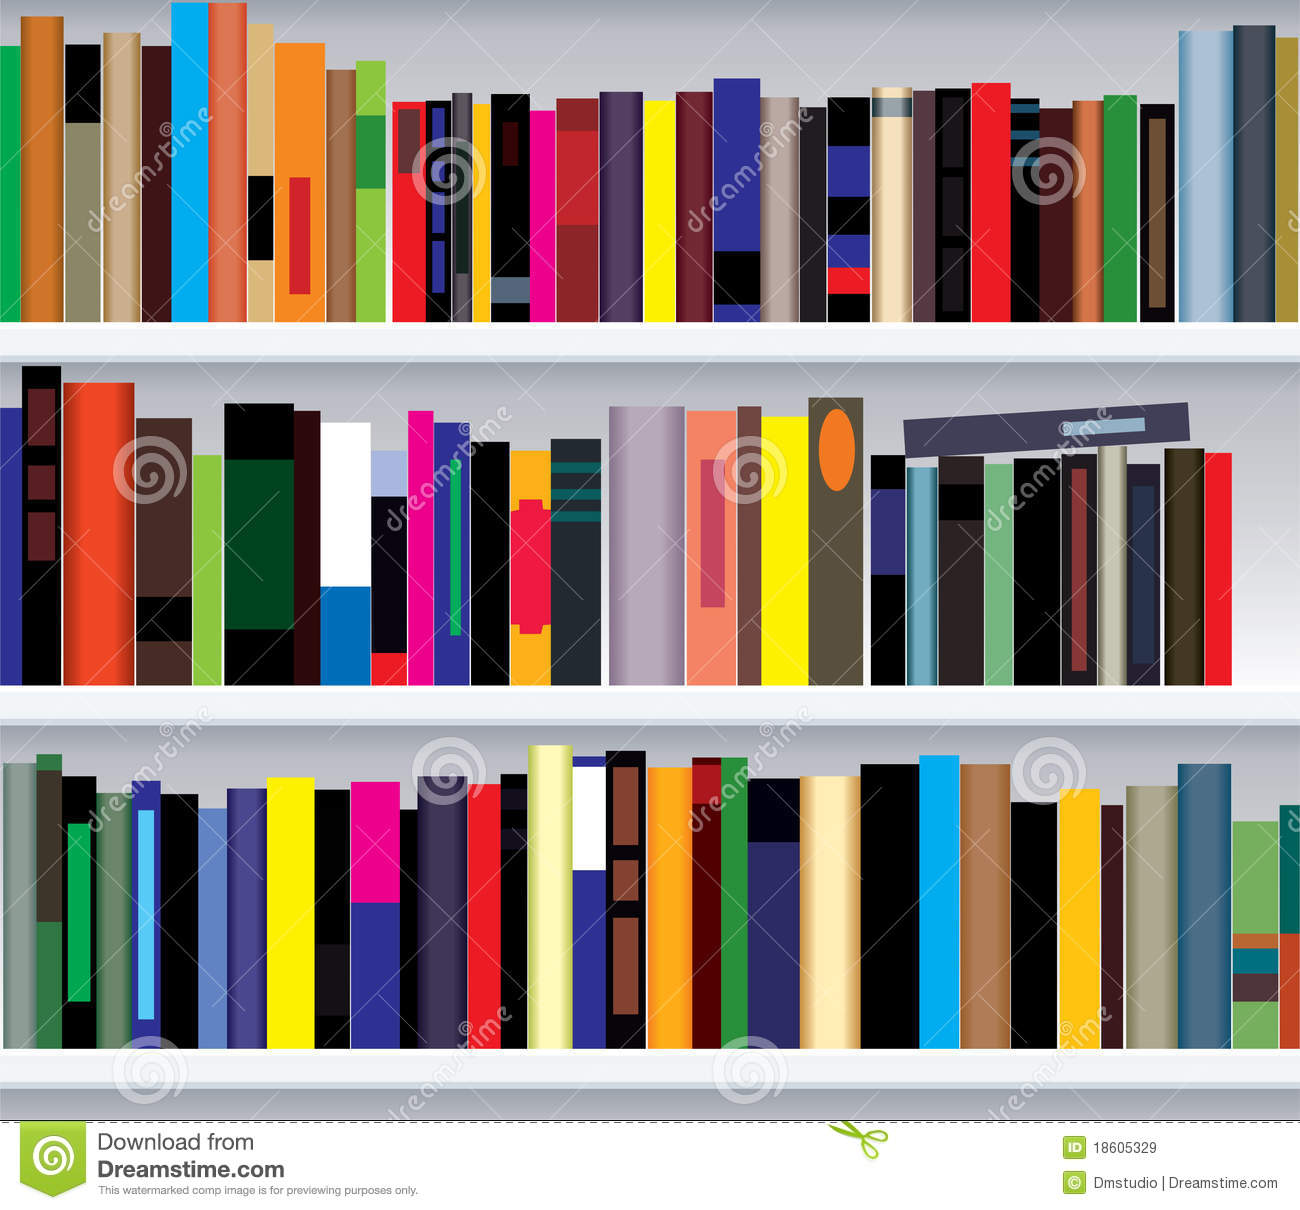 Bookshelf with books Royalty Free Stock Photo Bookshelf